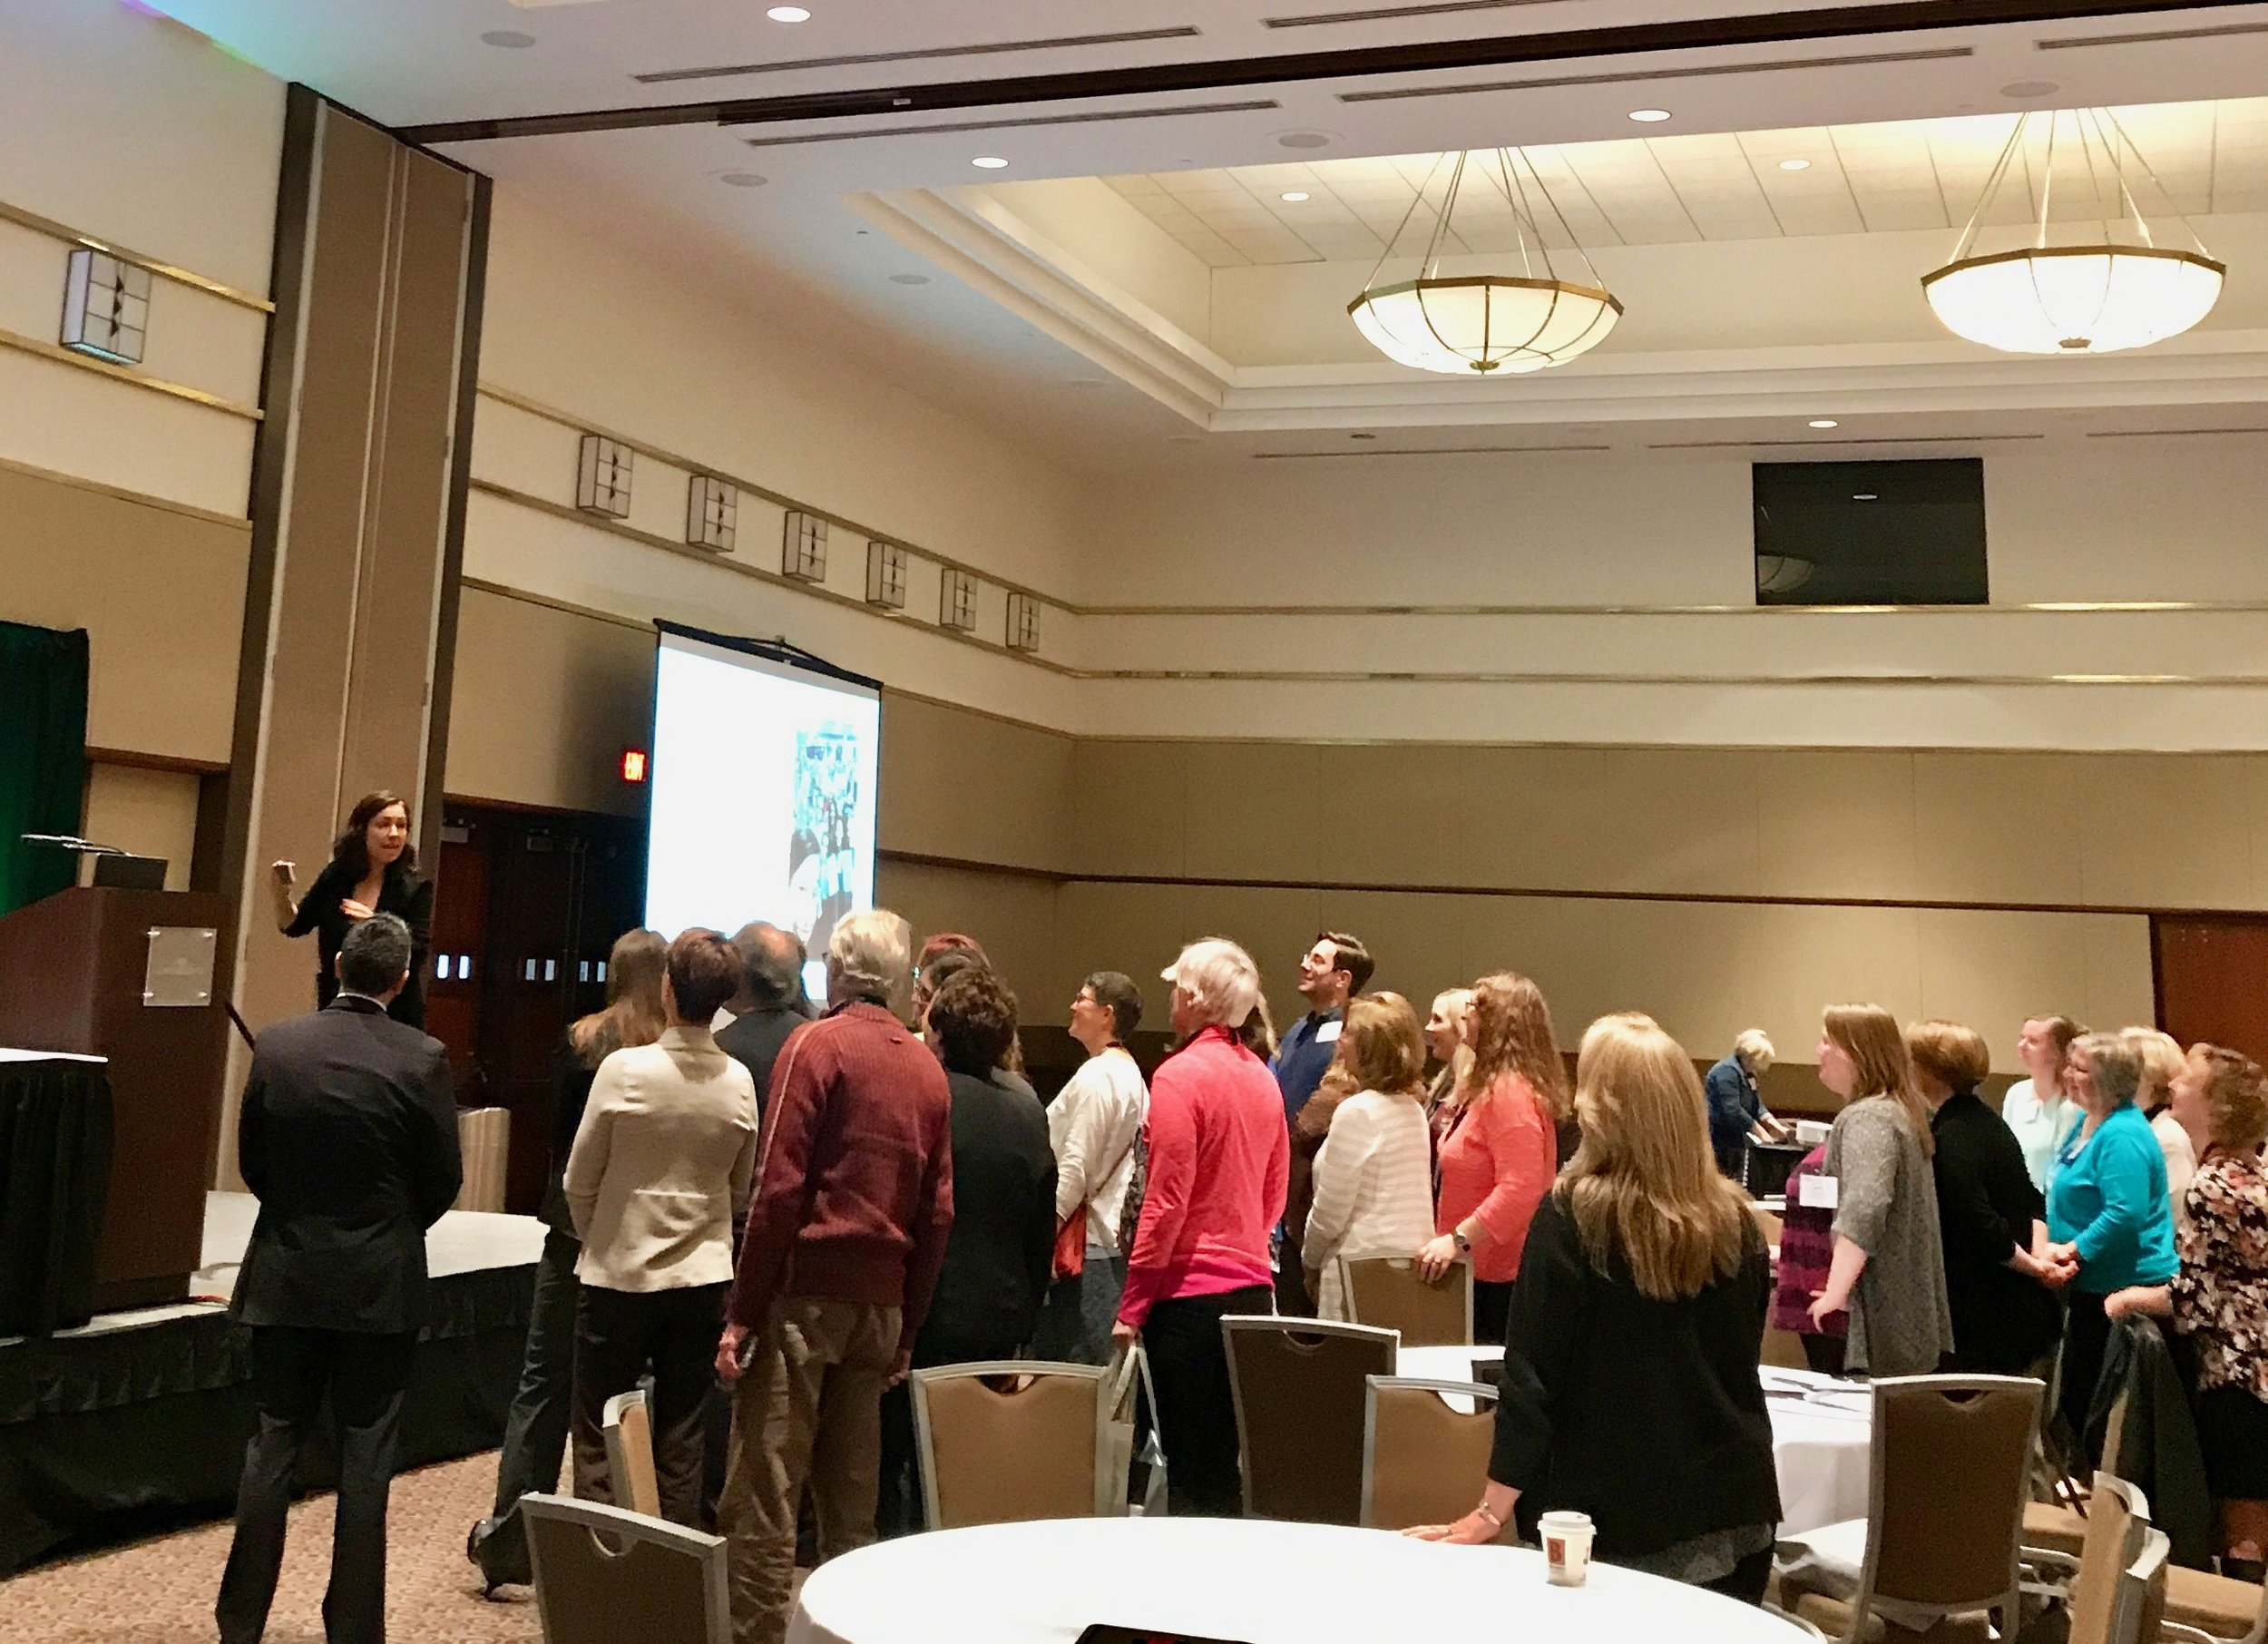 Manoush rallying the crowd for a selfie at the Michigan Library Association conference, in Lansing, MI. during her October book tour.